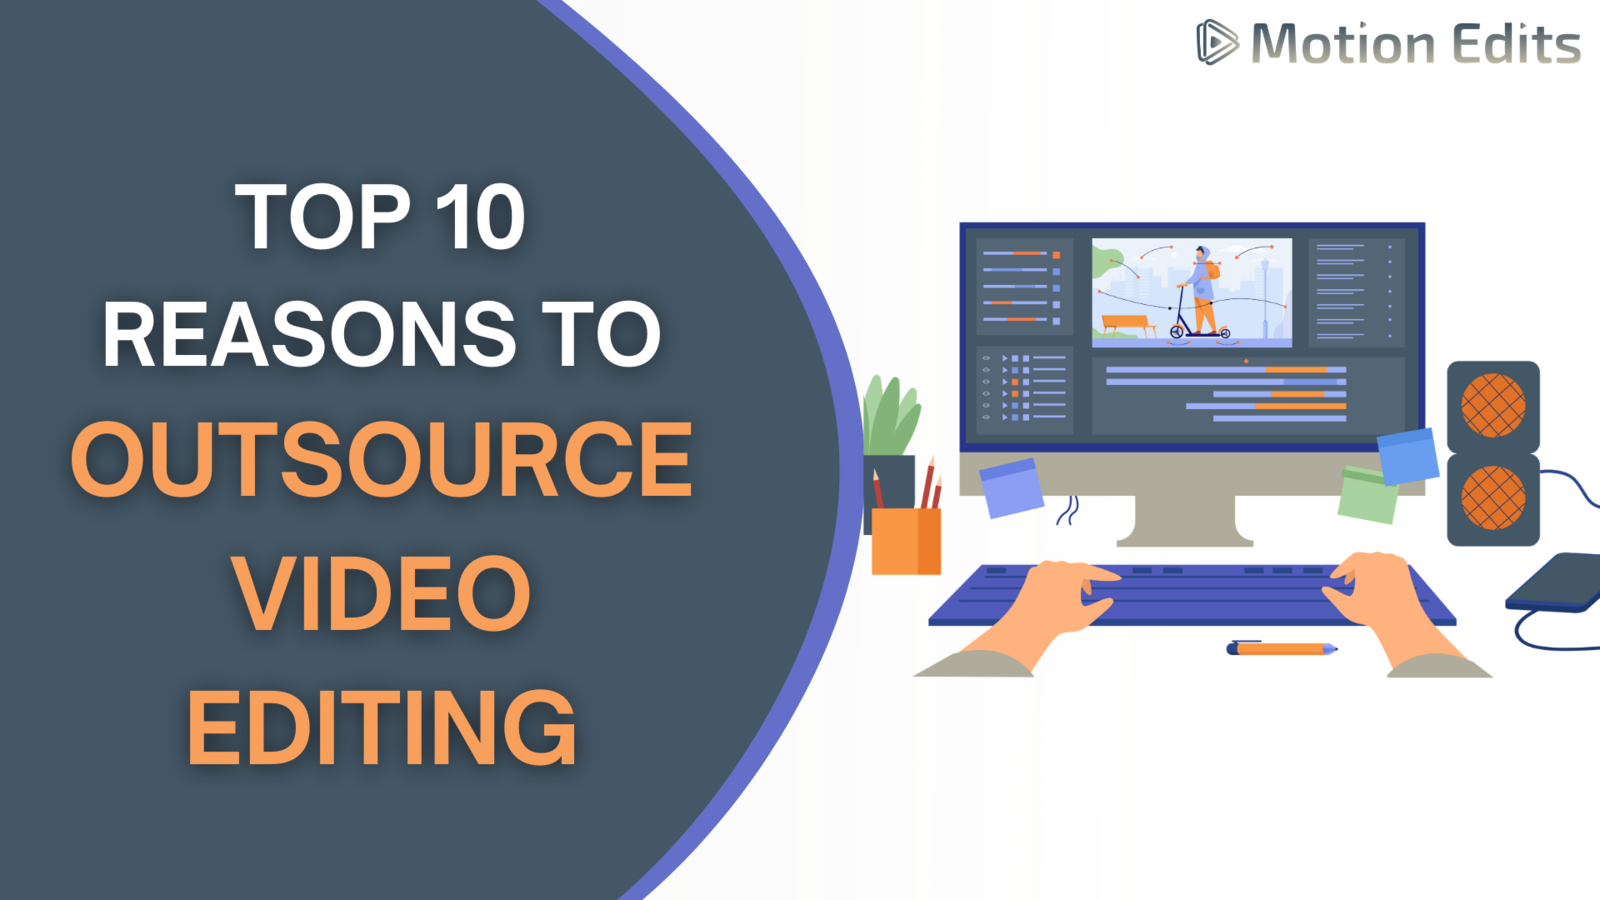 Top 10 Reasons to Outsource Video Editing